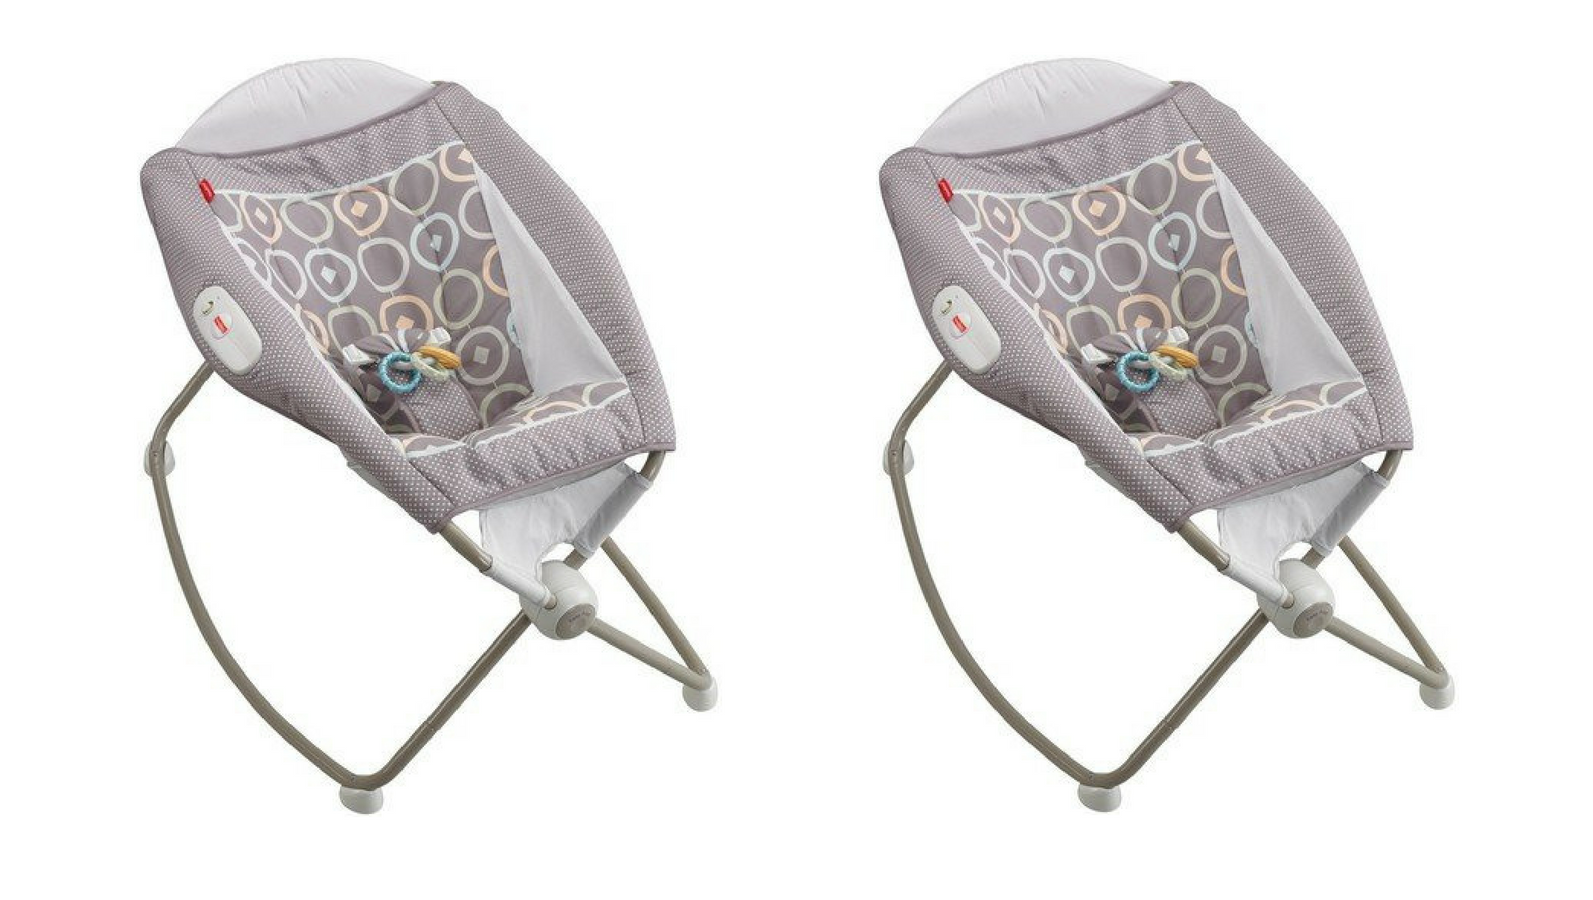 Baby Open-Minded Baby Swing Ingenuity For Improving Blood Circulation Baby Gear